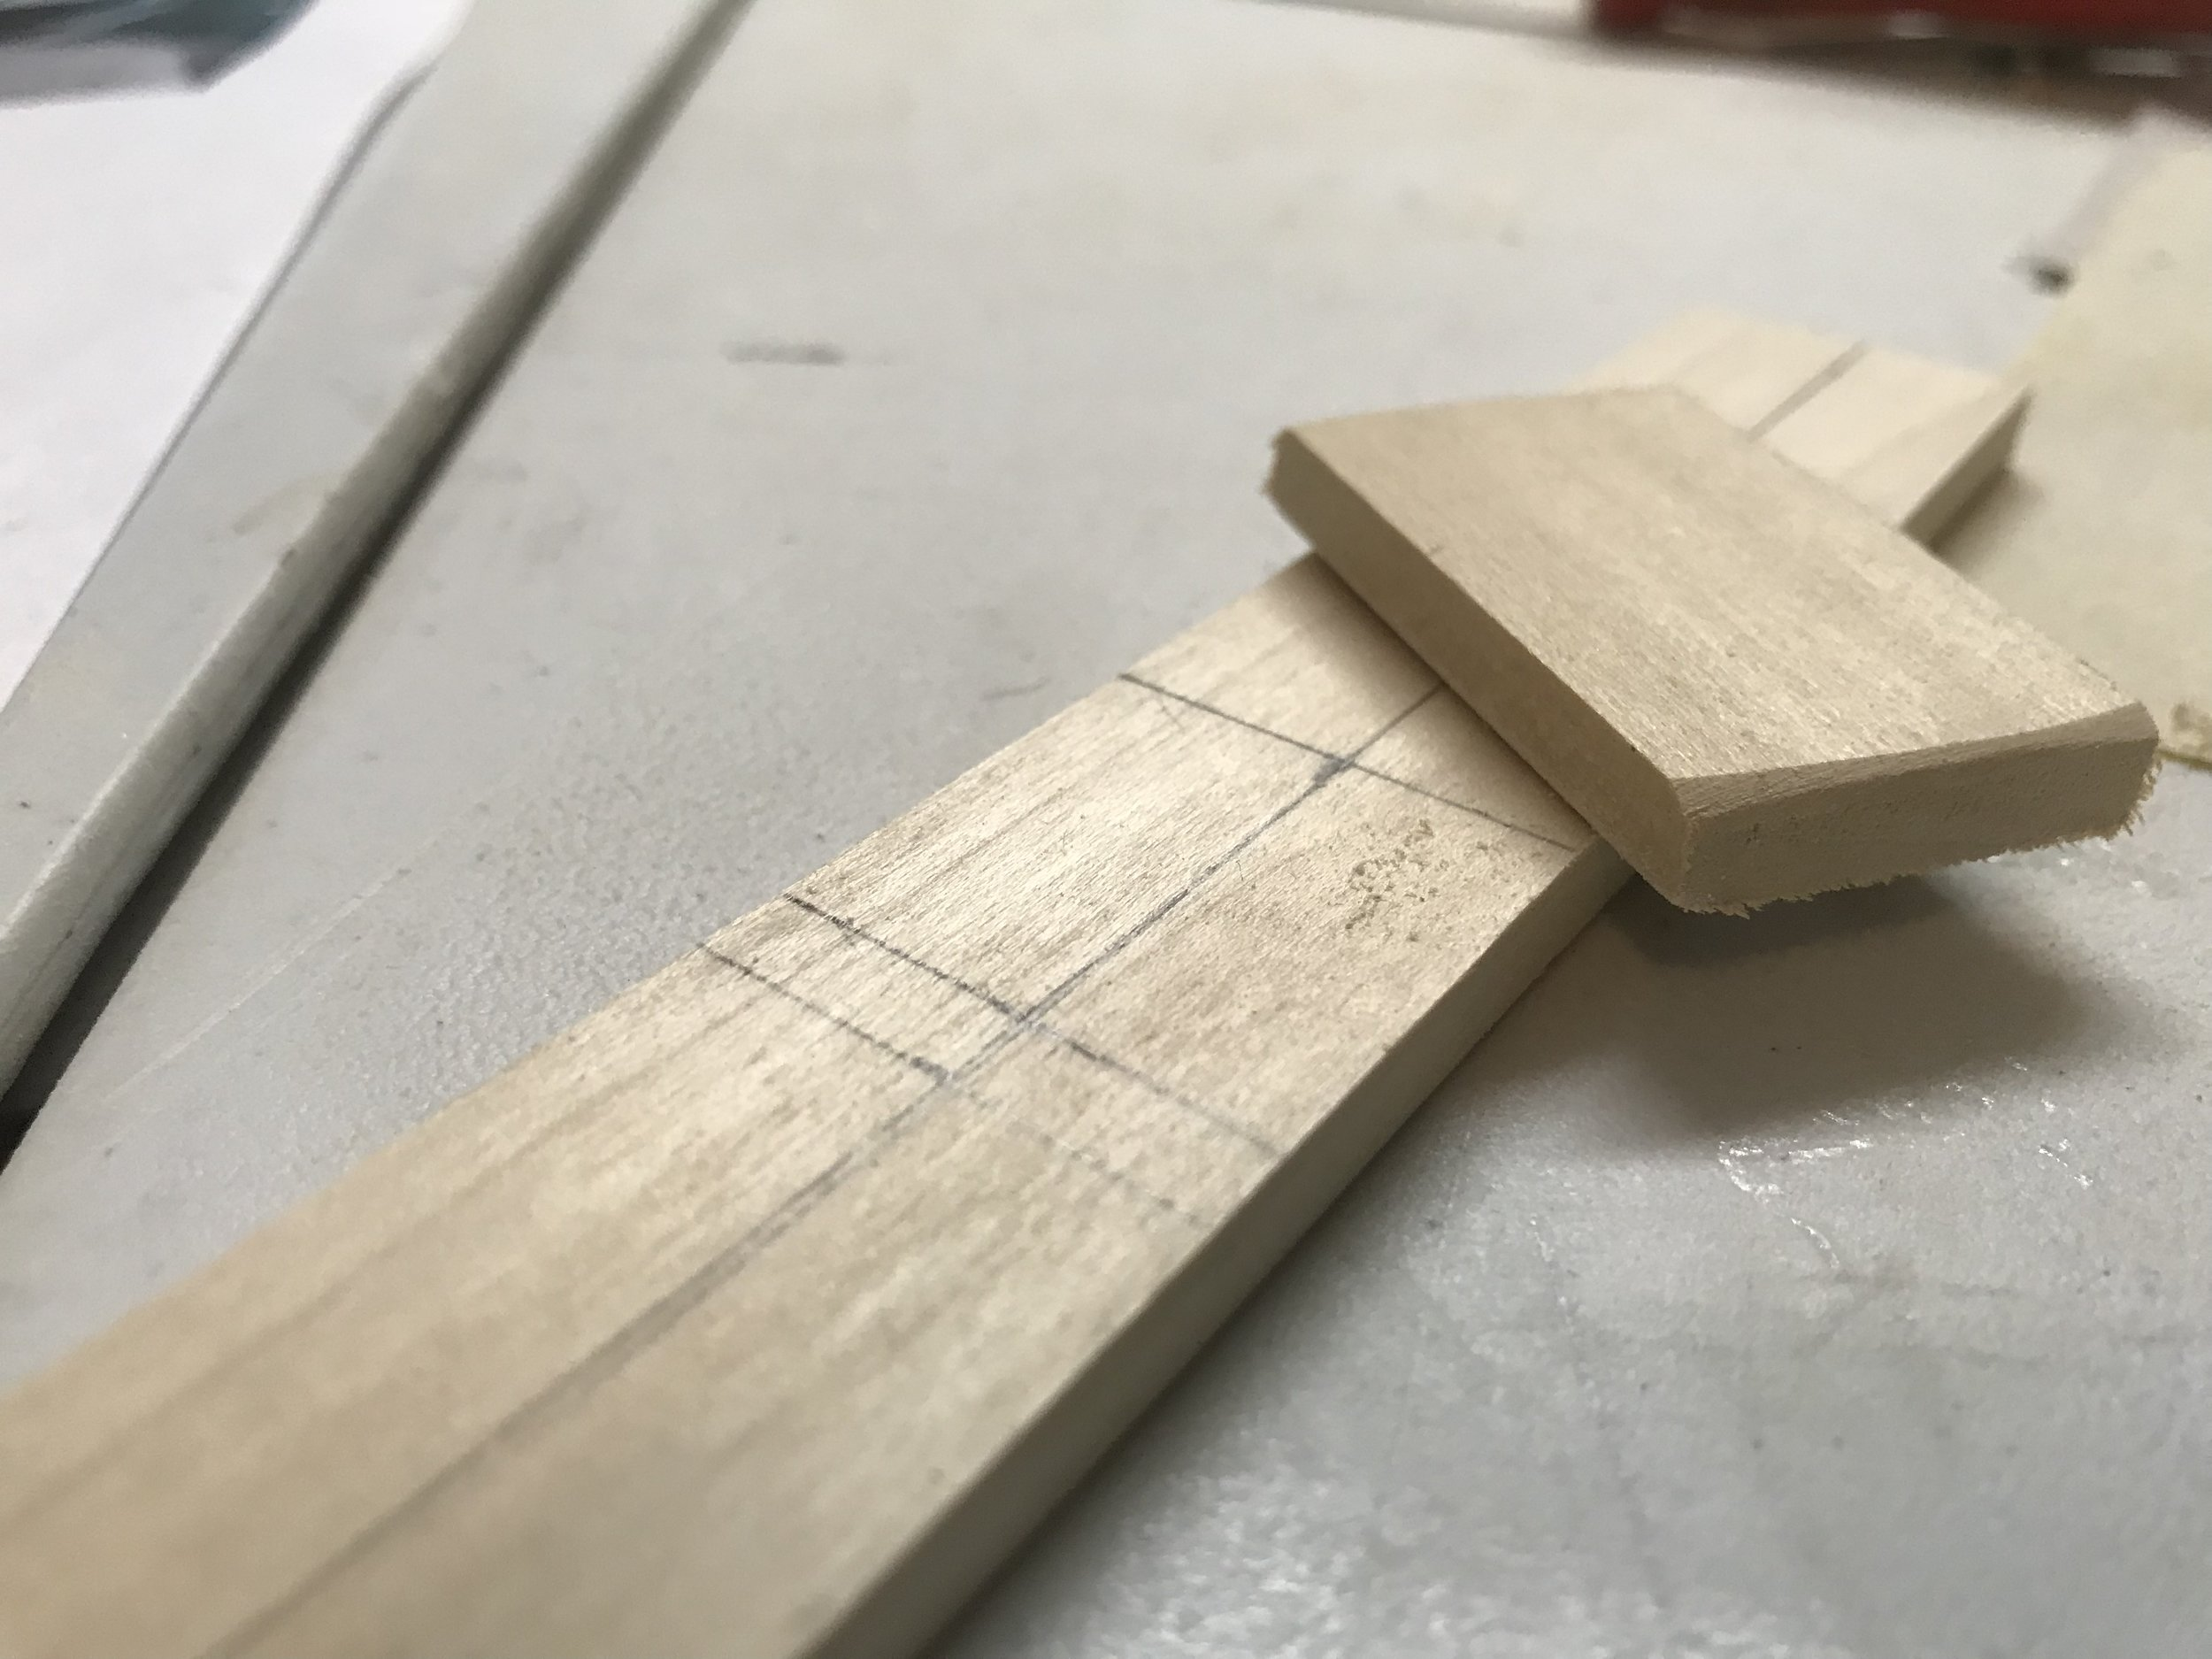 Finding the center and making the raised portion of the dash.